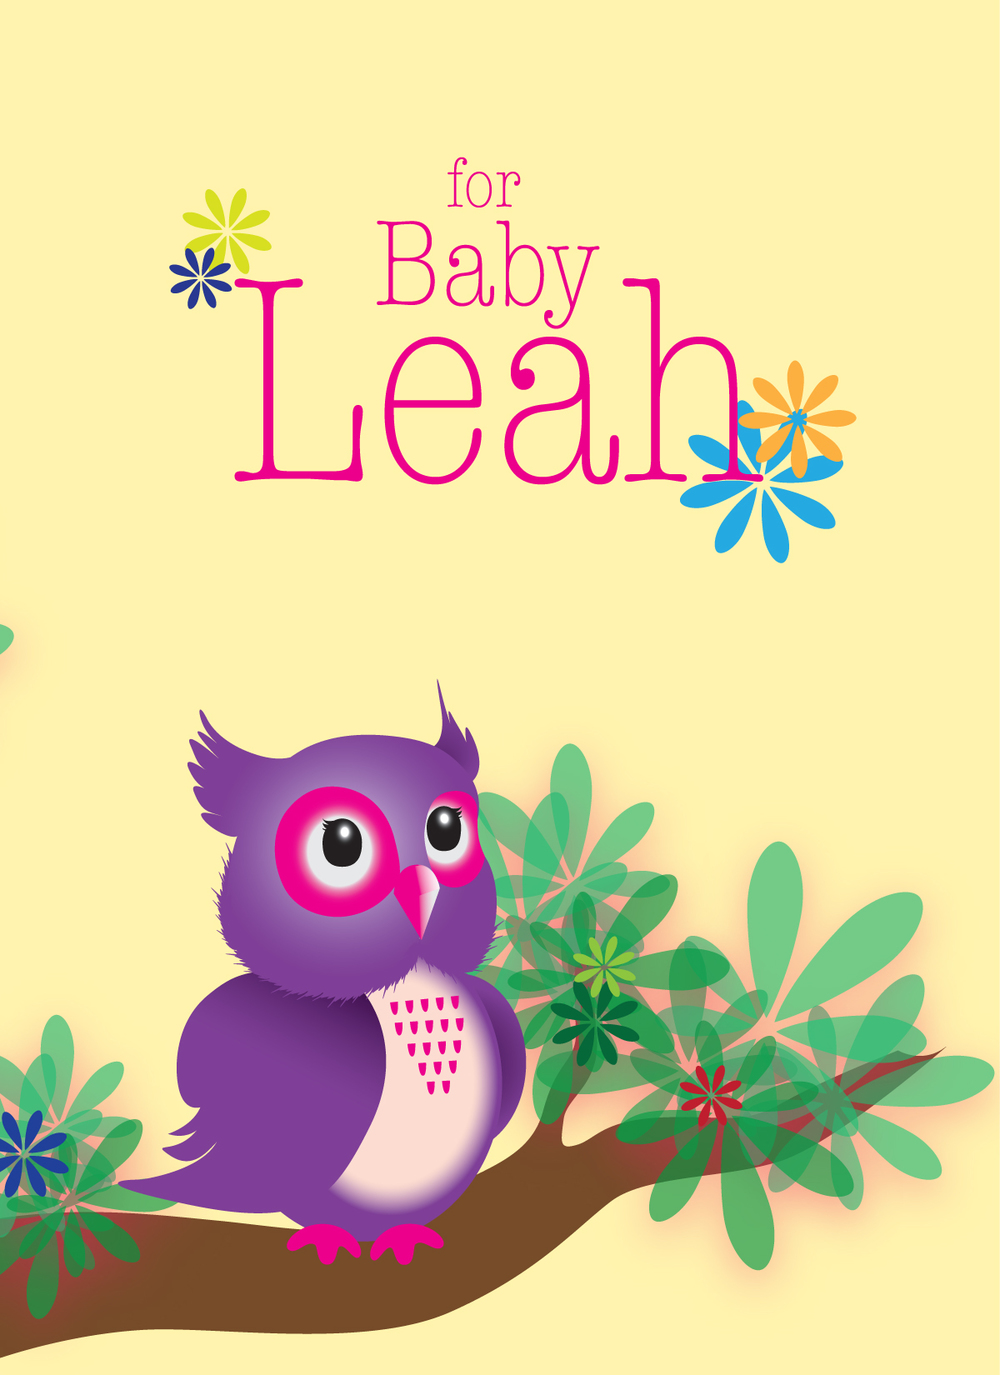 Greetings ya lan young baby shower greeting card kristyandbryce Image collections